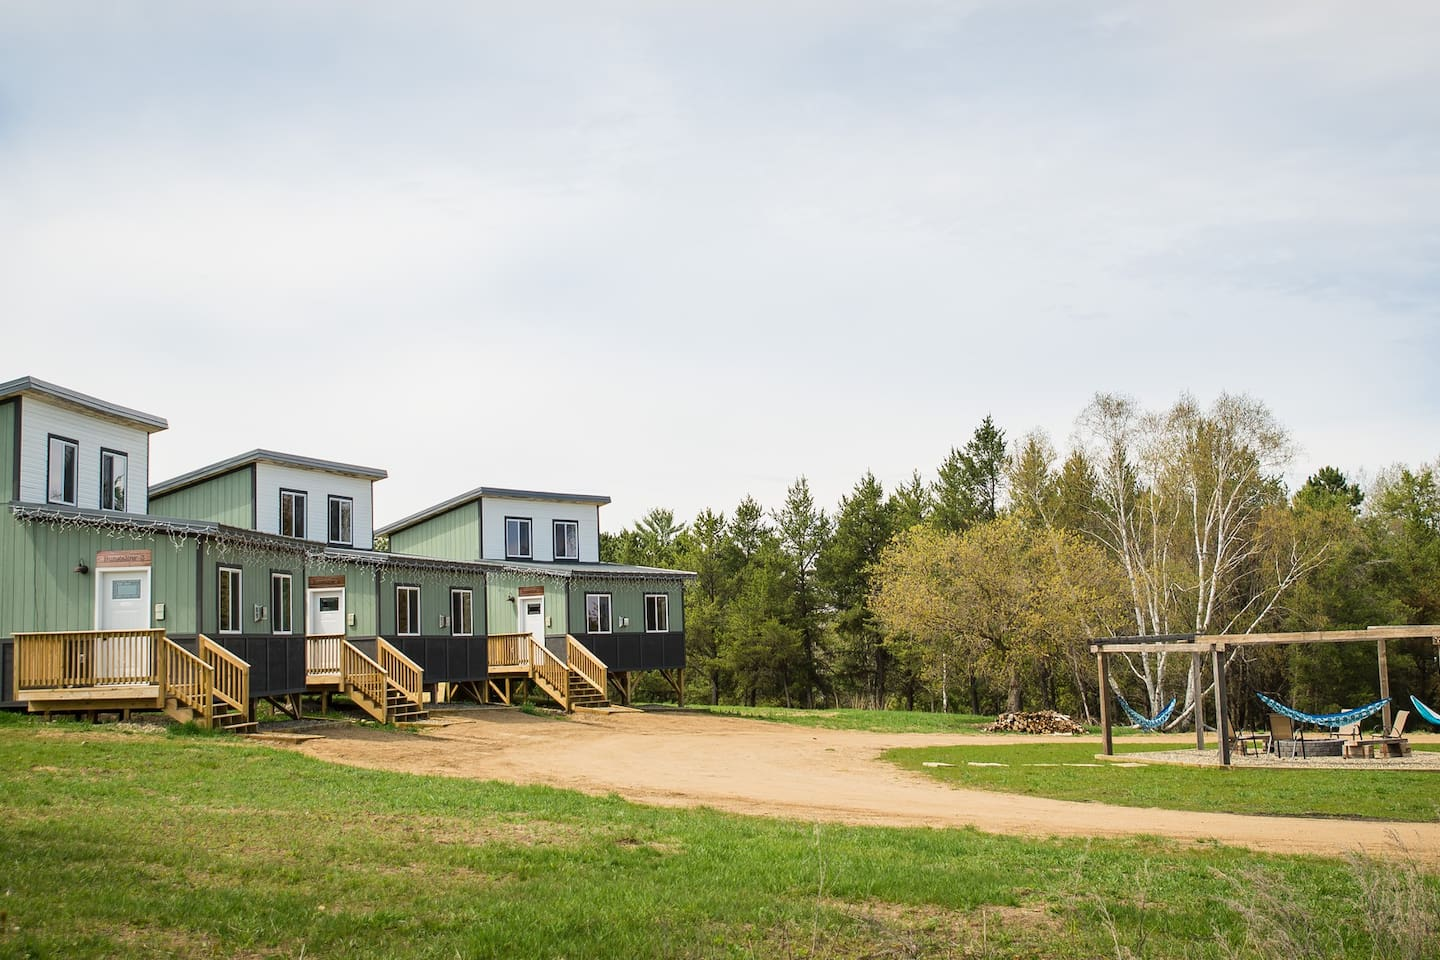 We have 3 bungalows available. Perfect place to have a family reunion.